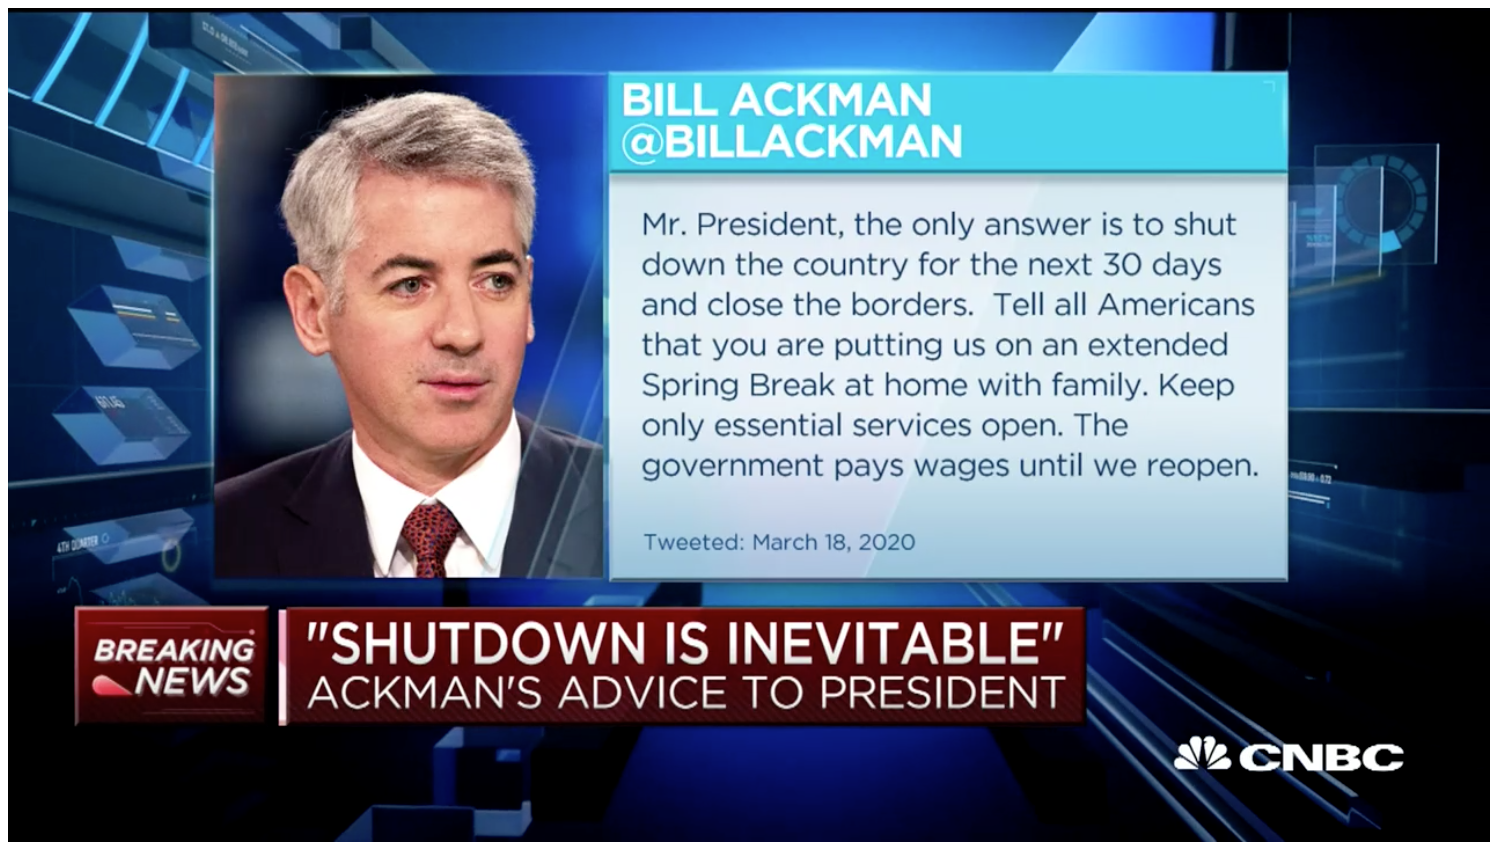 Bill Ackman says coronavirus will kill 1 million Americans if U.S. doesn't shut down everything for 30 days